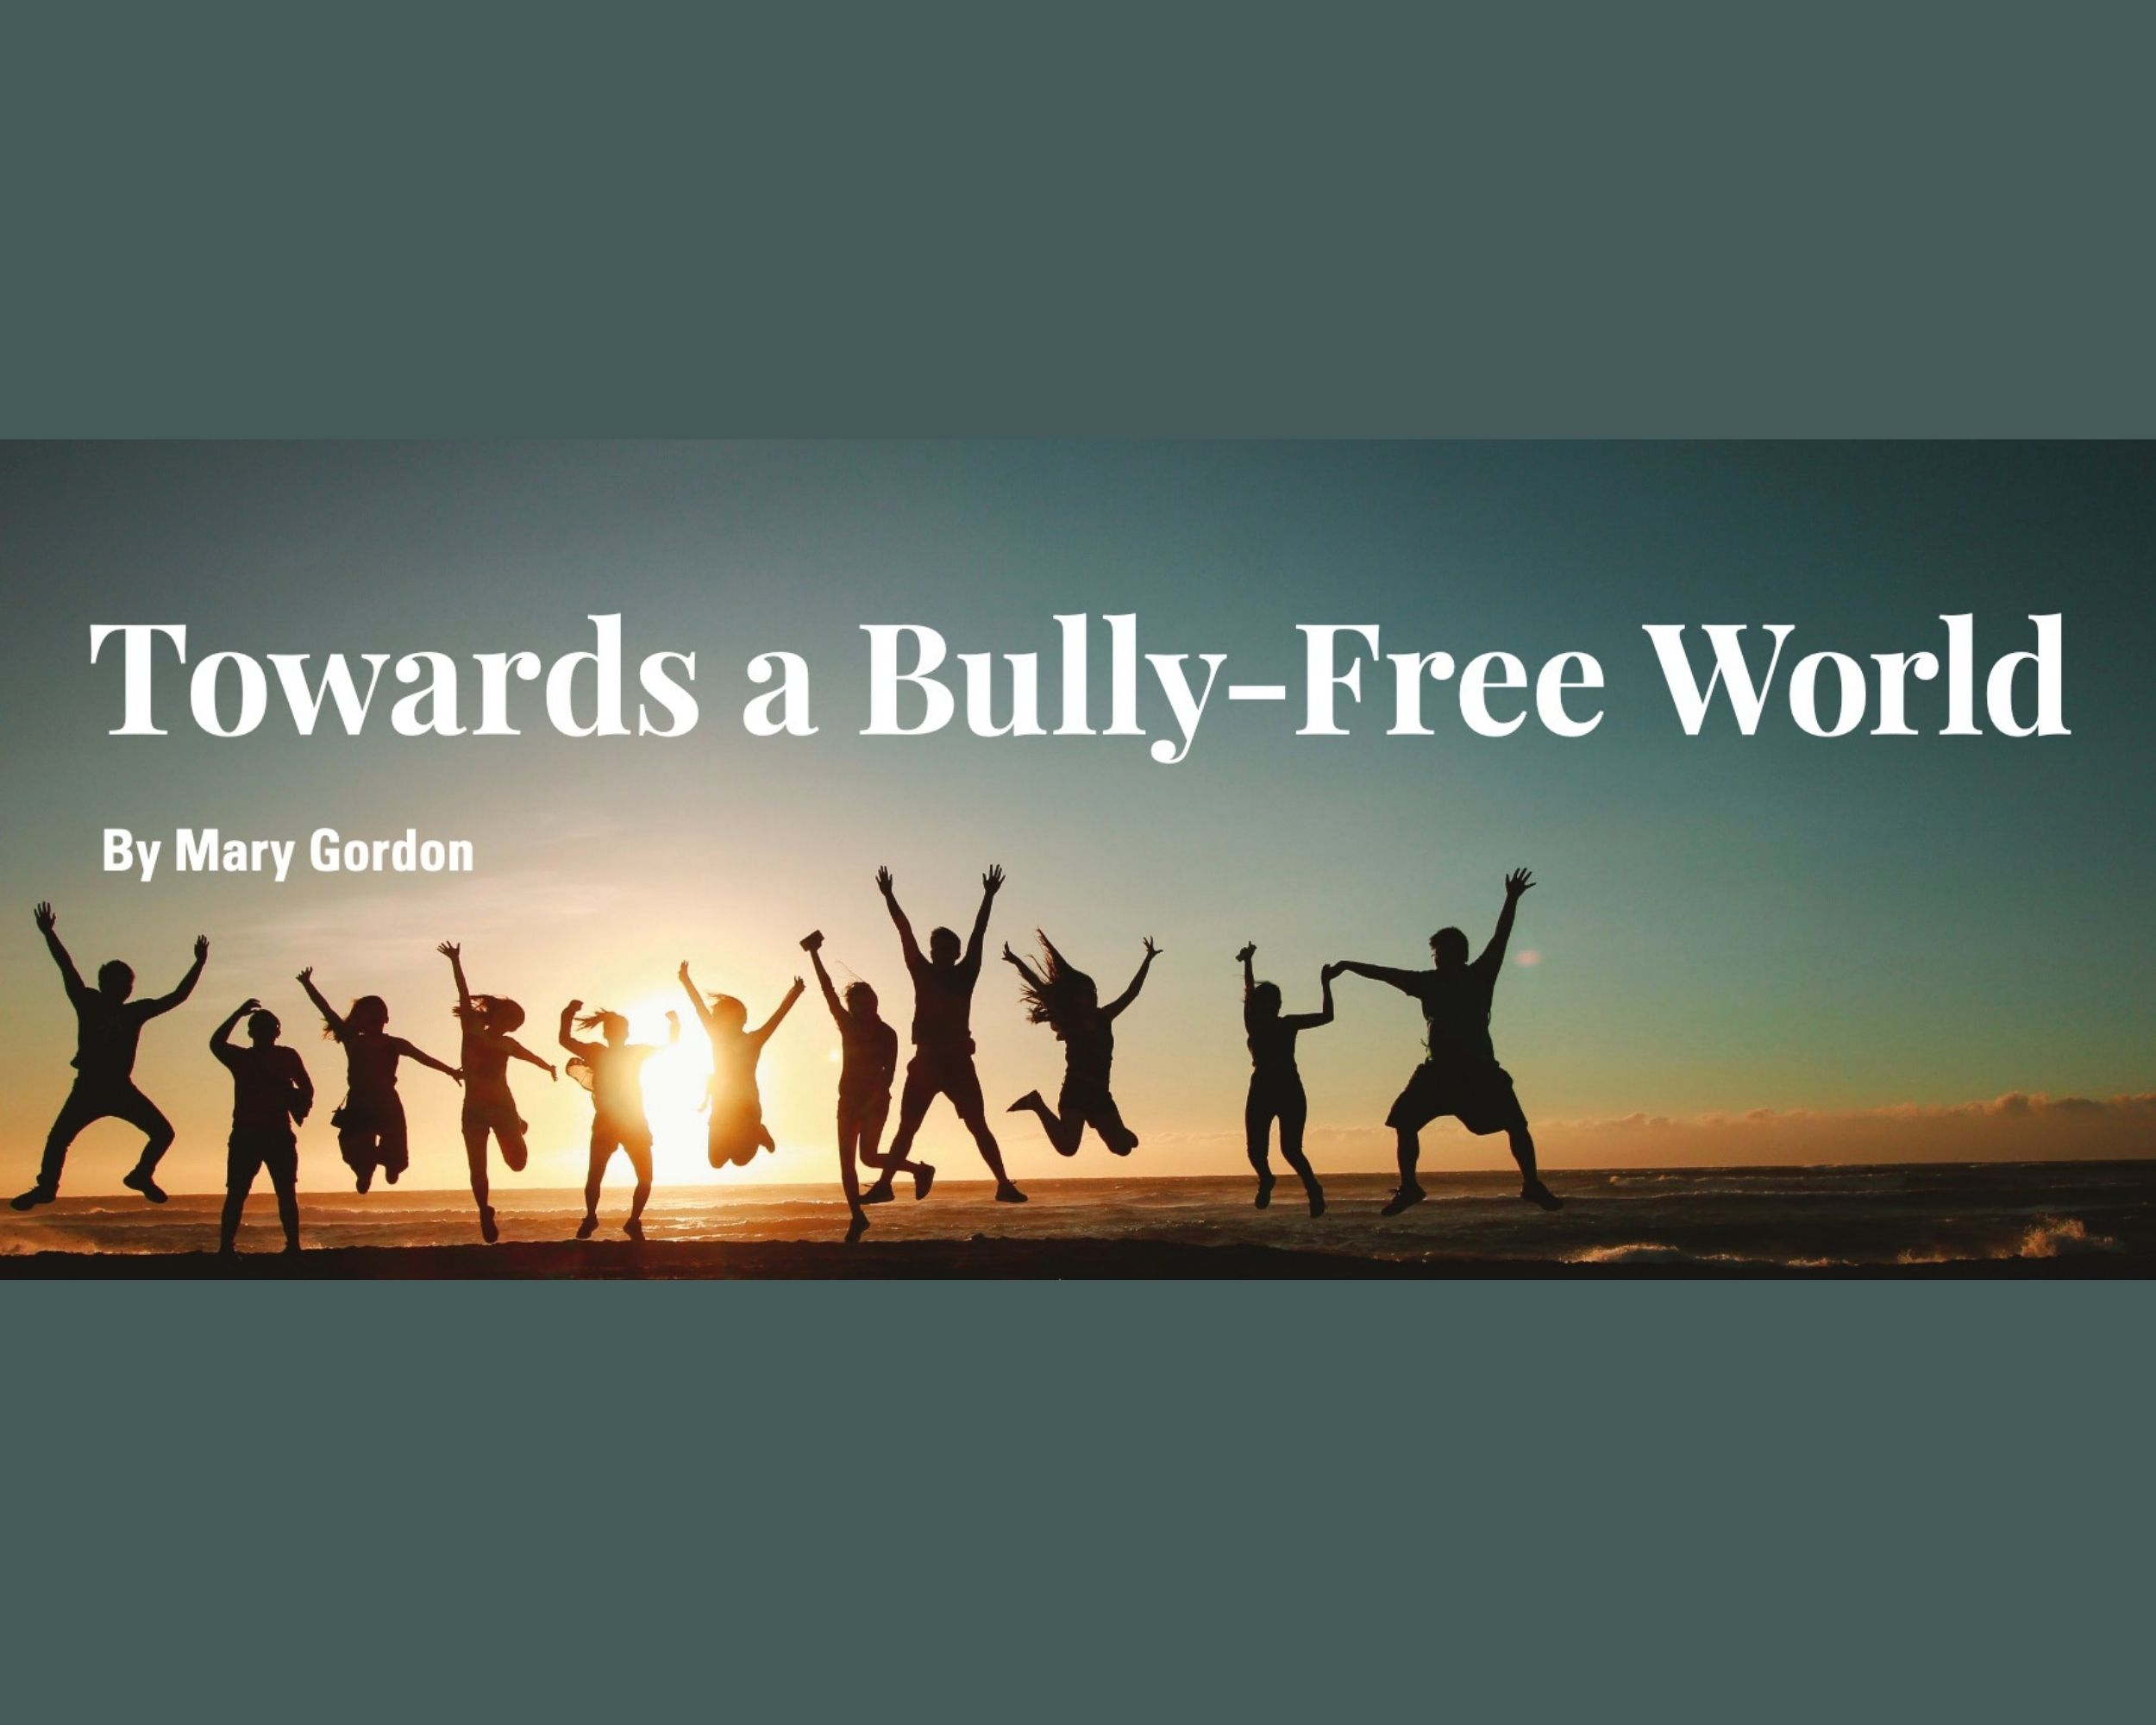 Towards a Bully-Free World